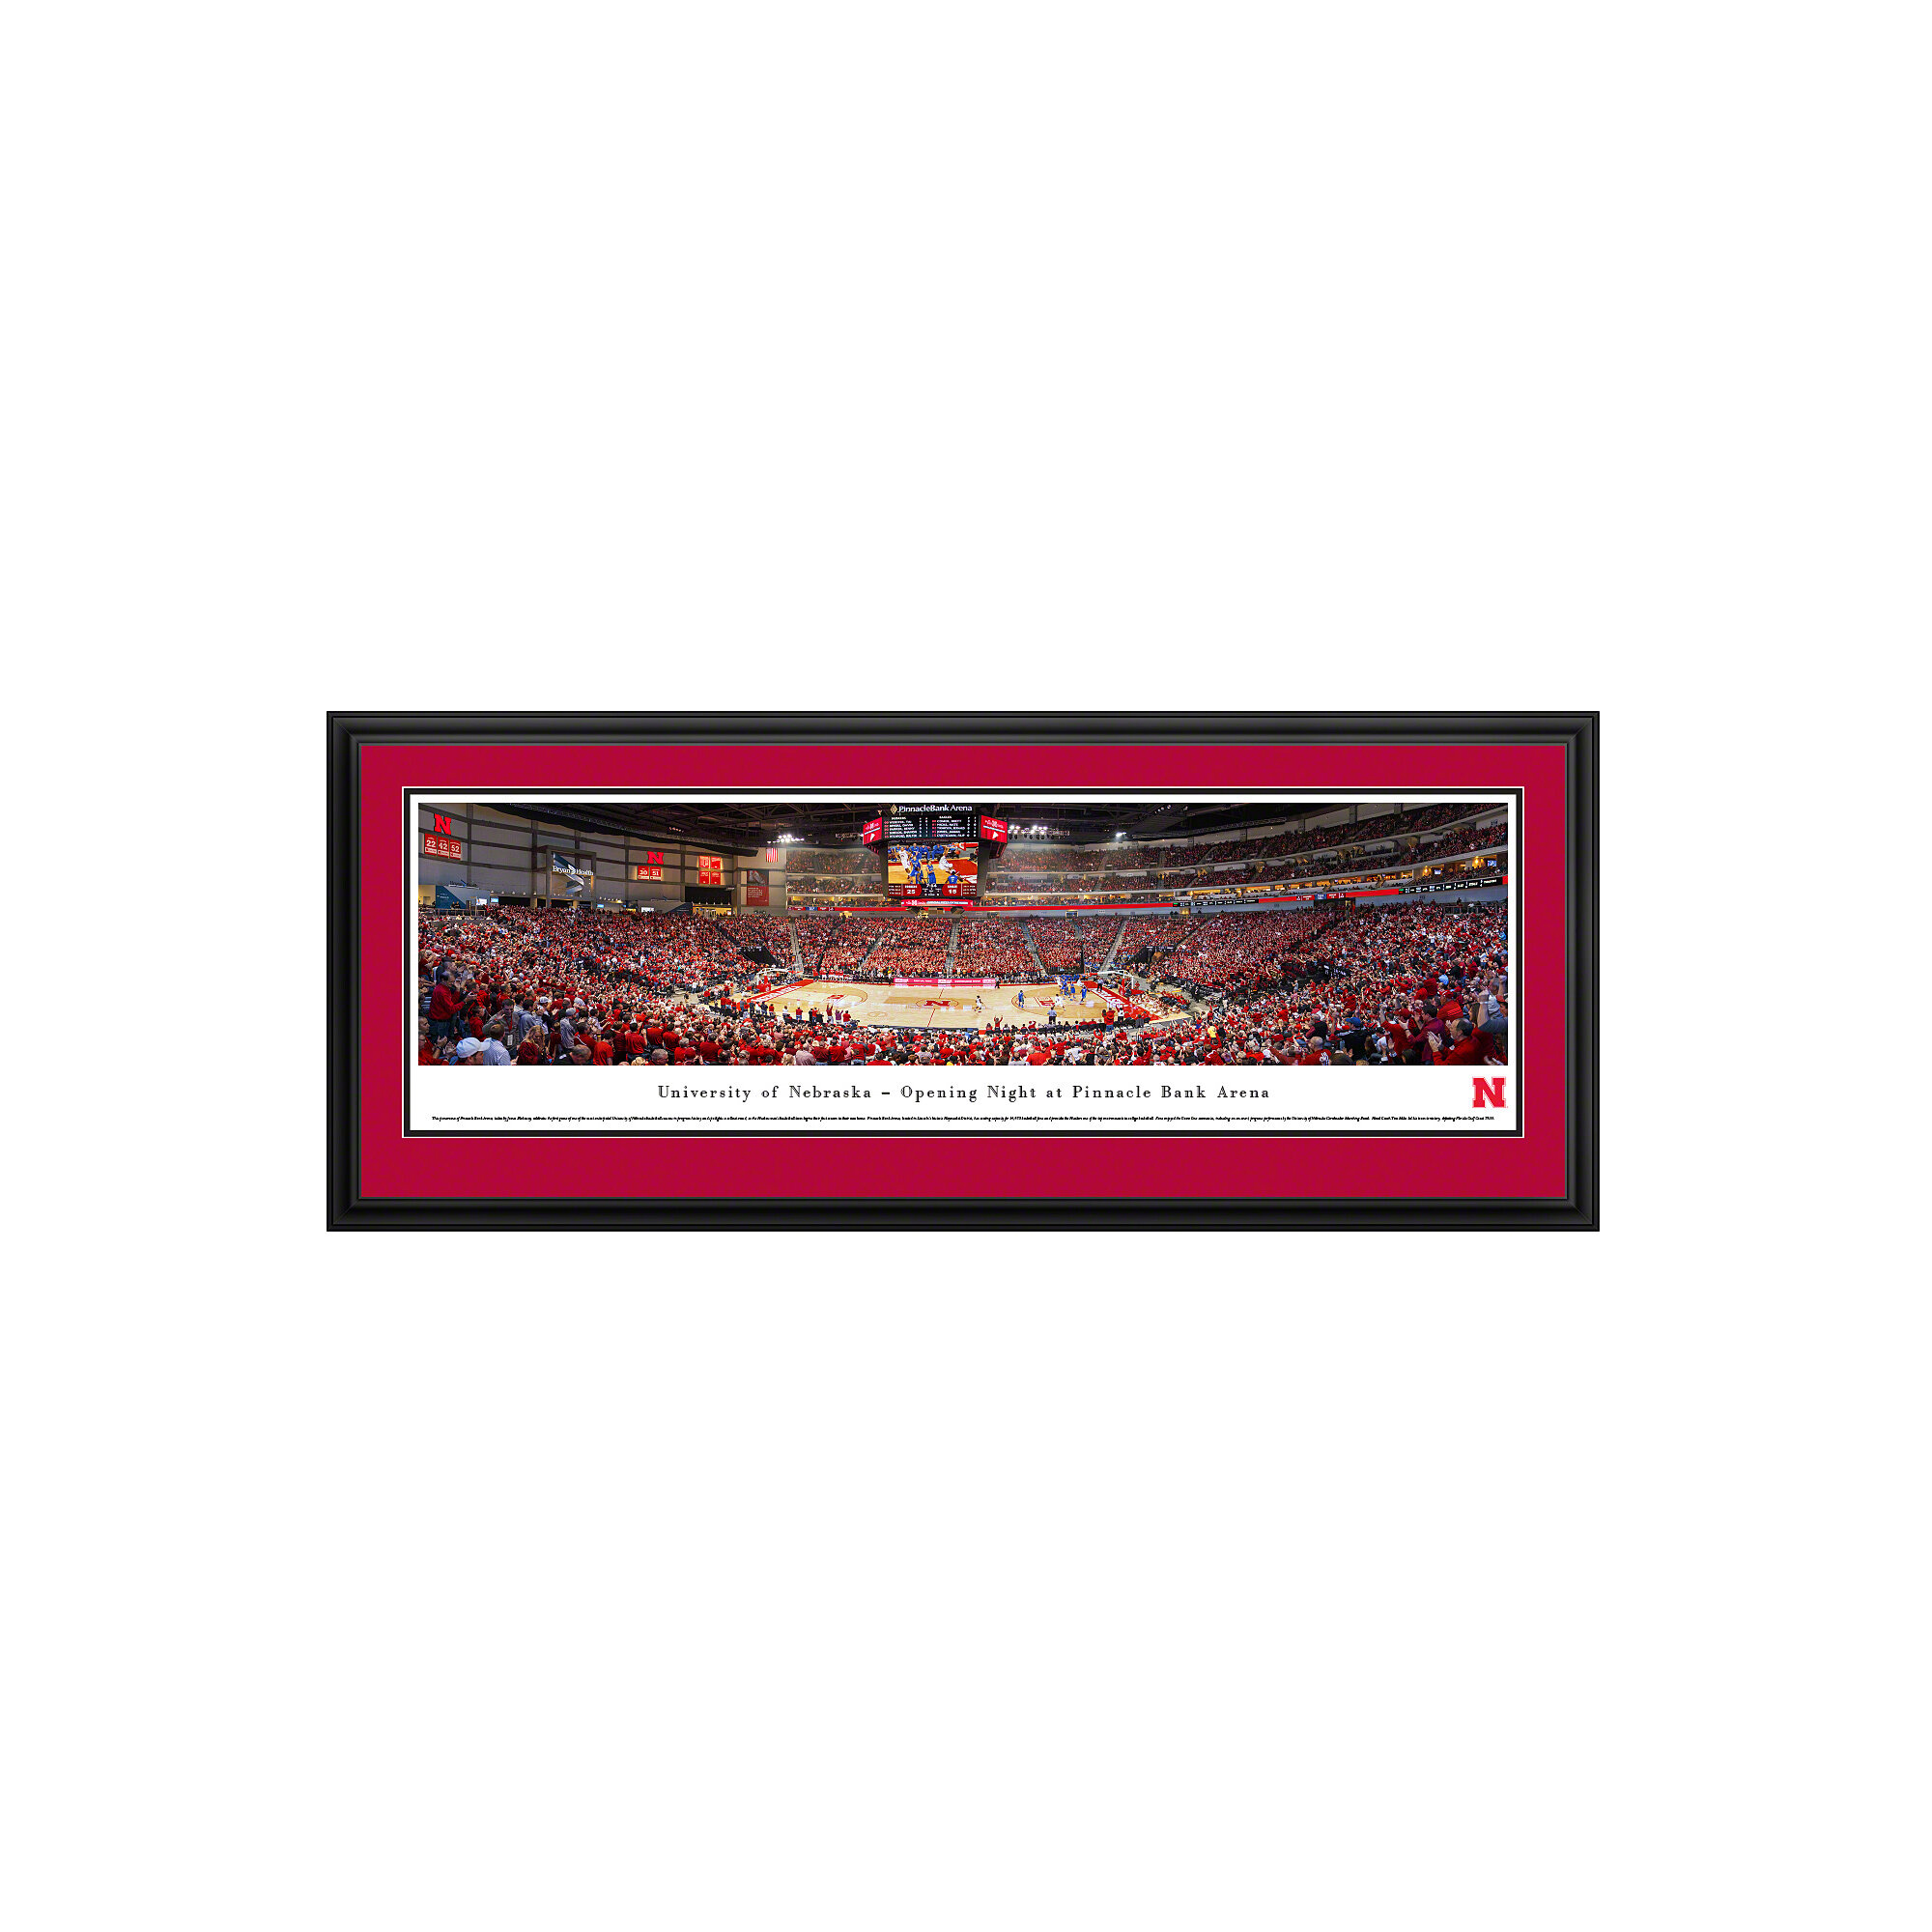 Vault W Artwork Ncaa Nebraska University Of Basketball By James Blakeway Framed Photographic Print Wayfair